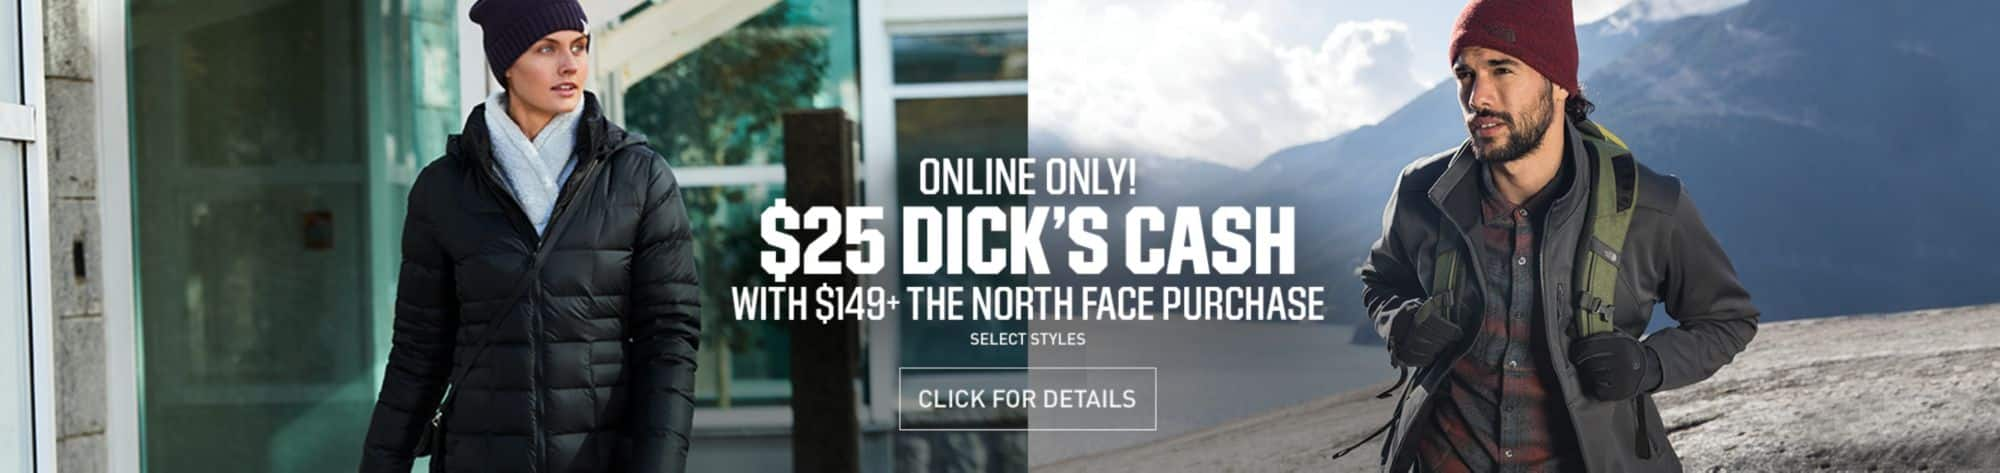 Dick's Sporting Goods: 25% Off Select The North Face + Get $25 Dick's Cash w/ Orders $149+